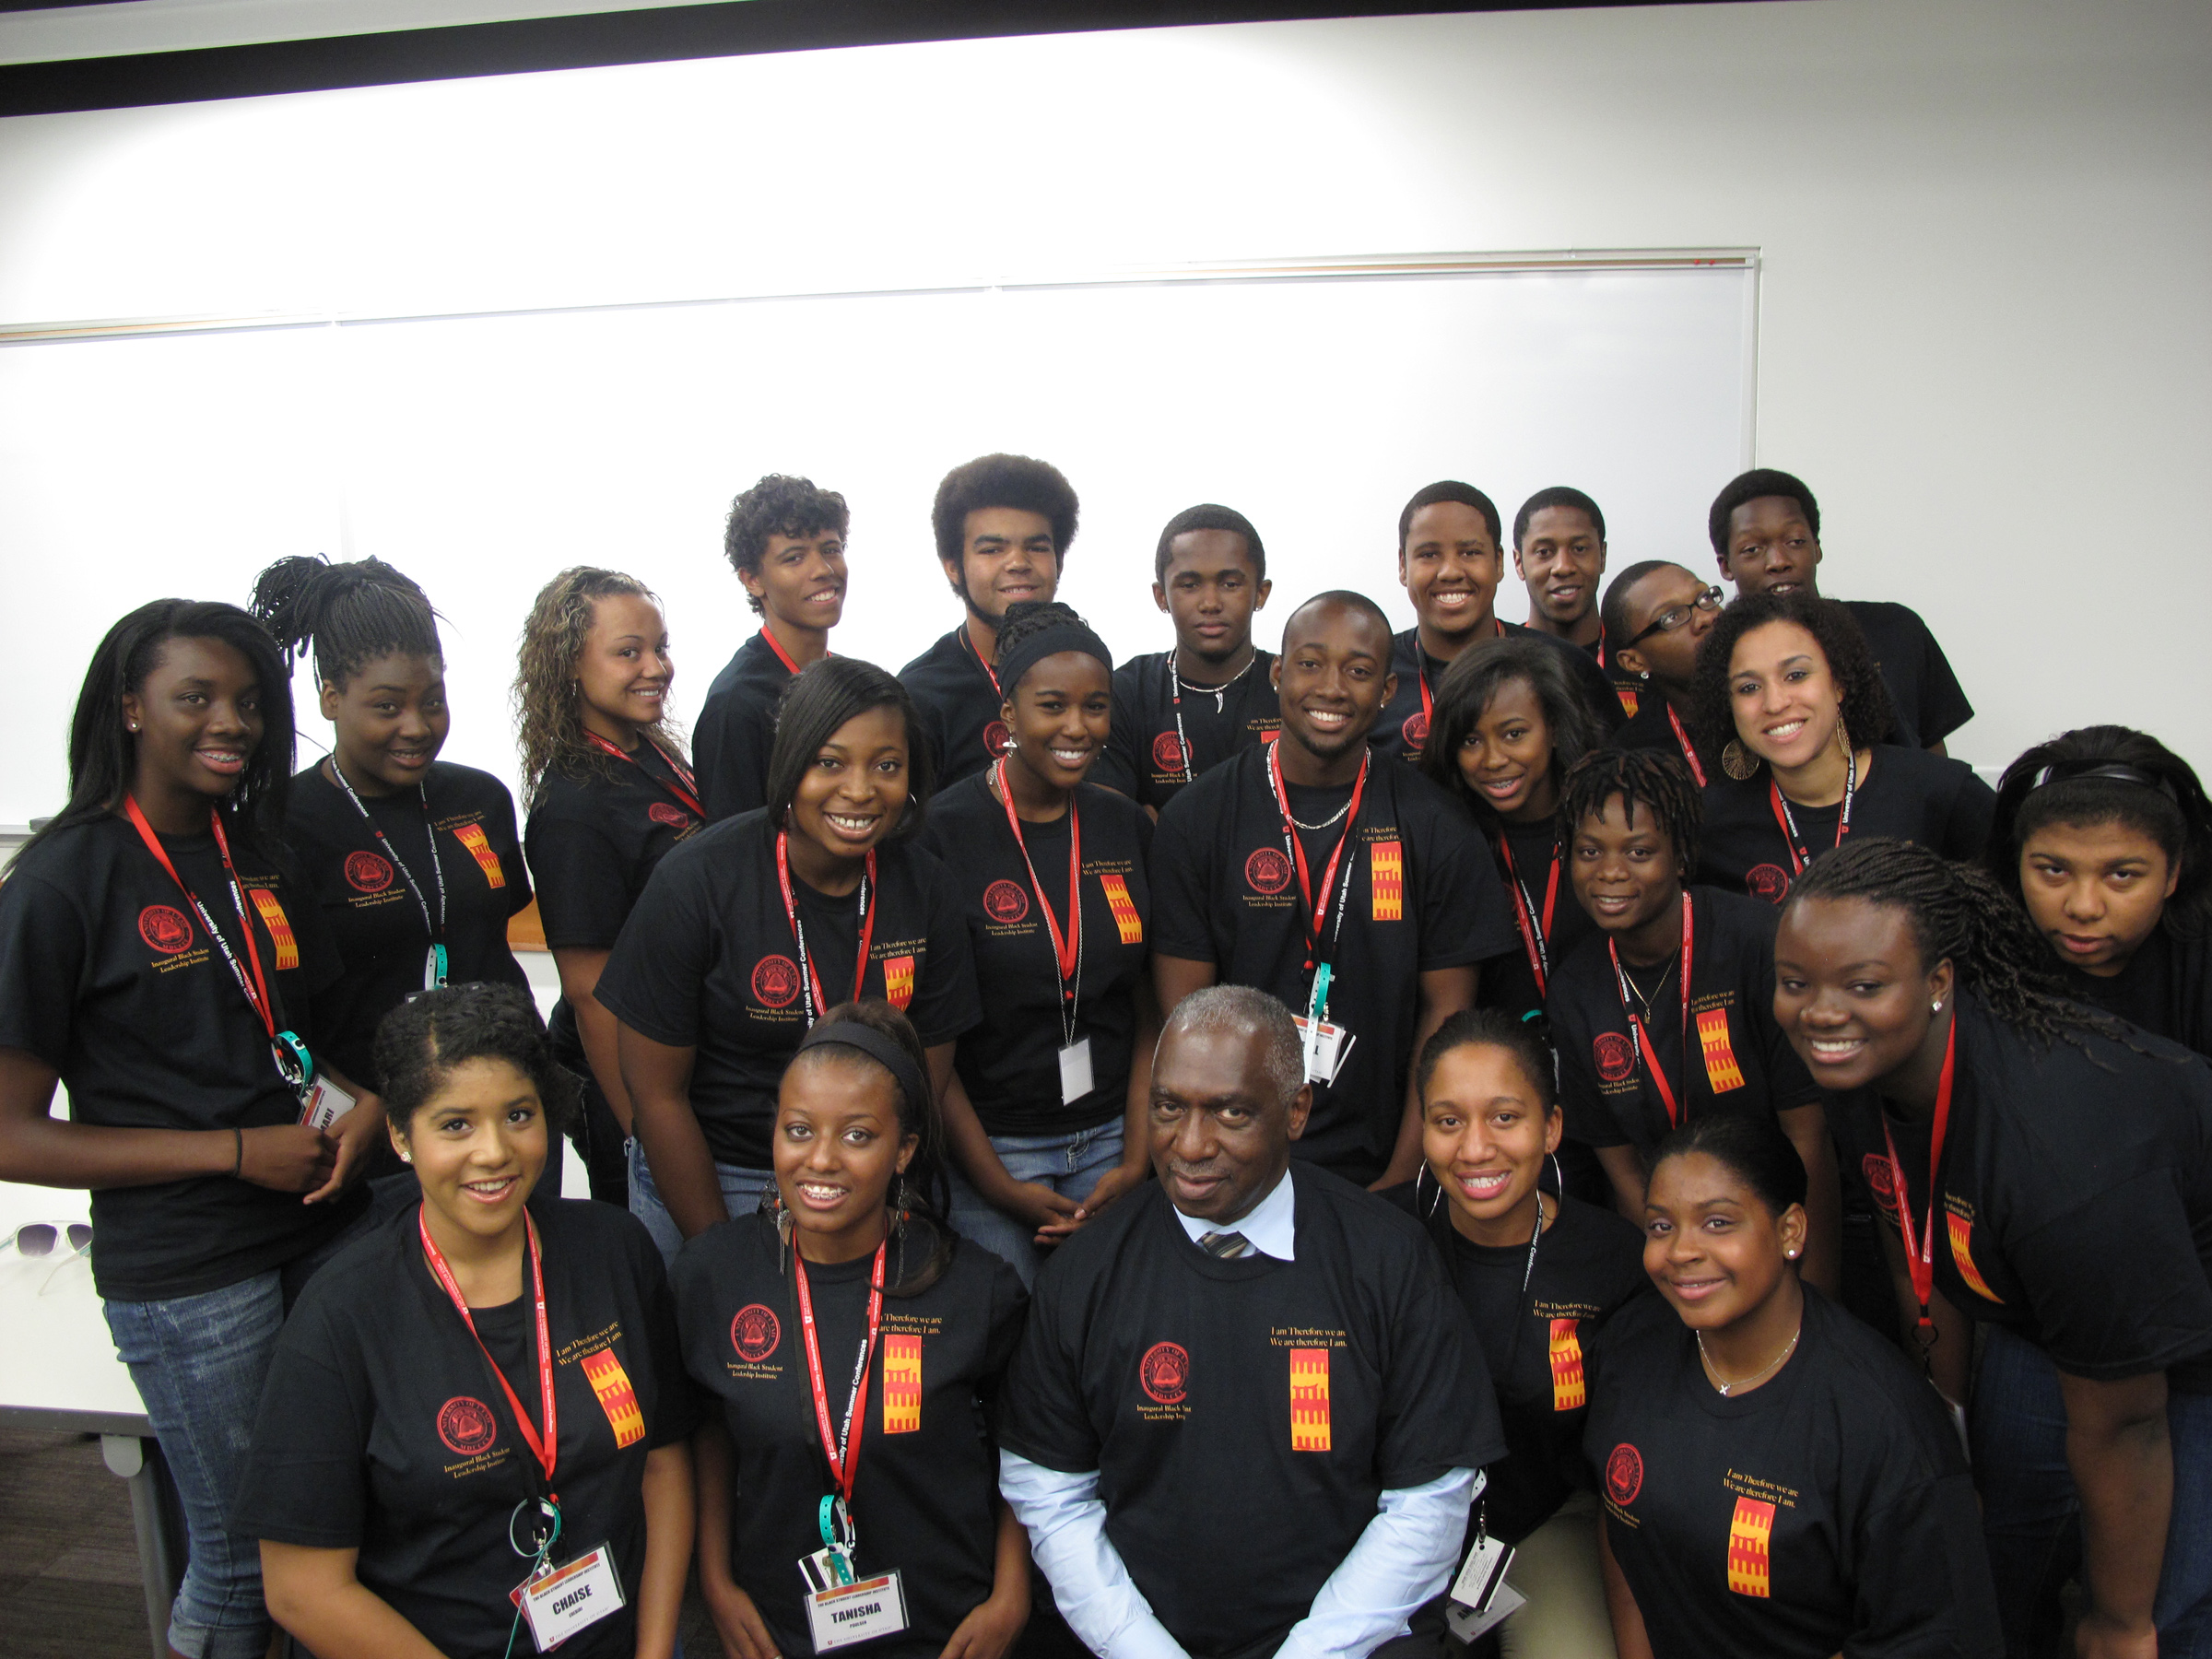 Students gather with a faculty mentor after a research session in the Marriott Library during the Inaugural Black Student Leadership Institute in 2012.